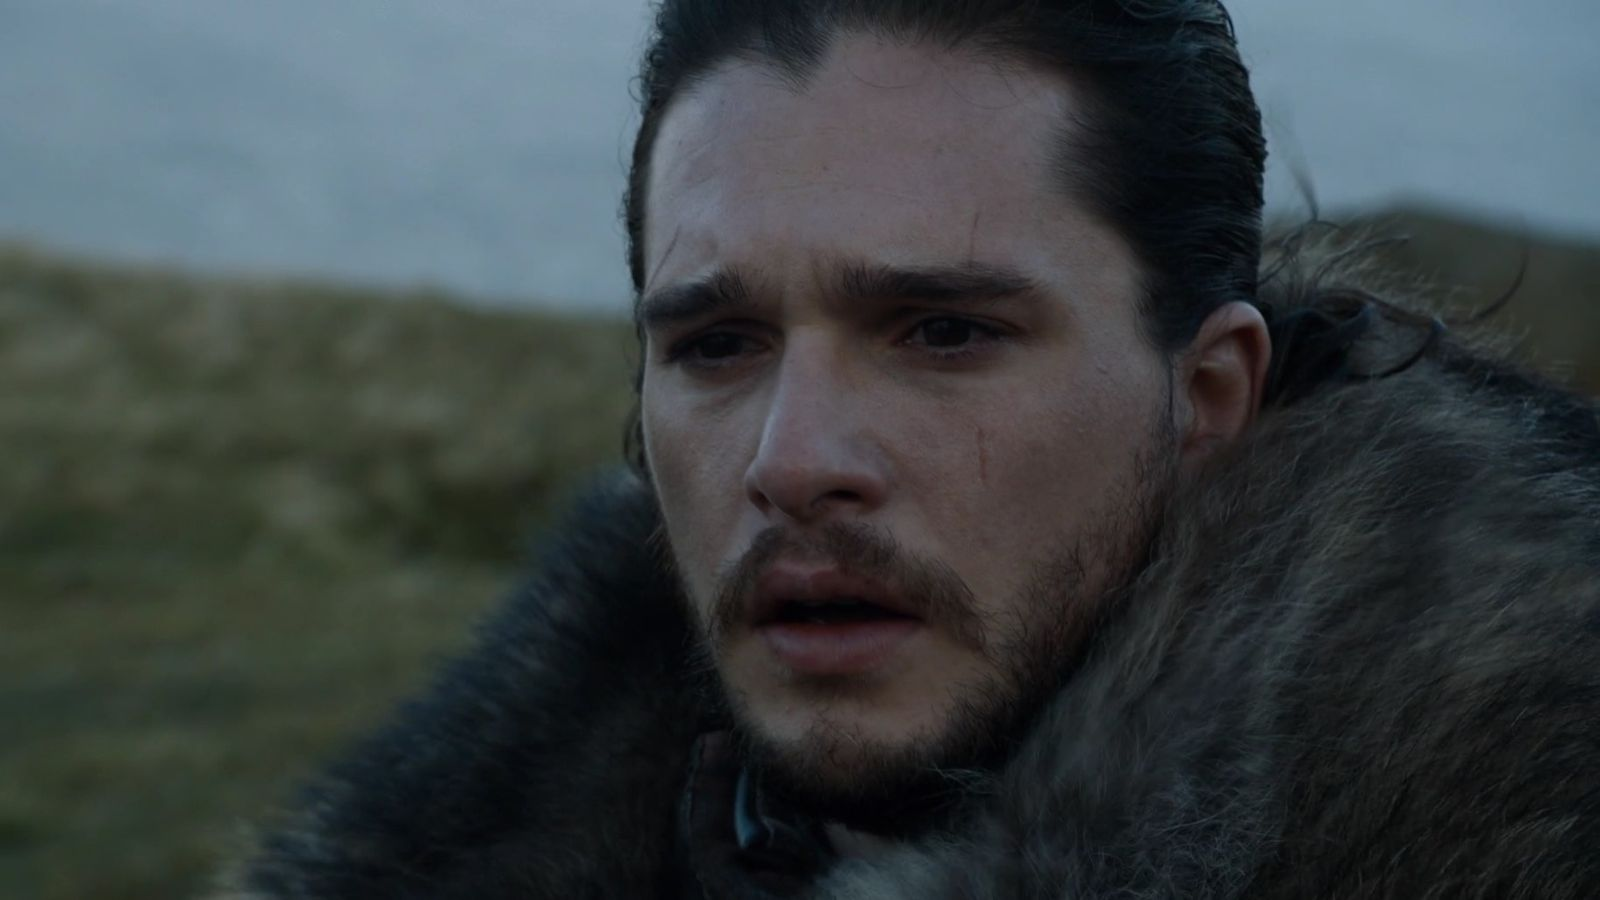 The biggest reveal on tonight's Game of Thrones was designed to make the audience scream at the screen